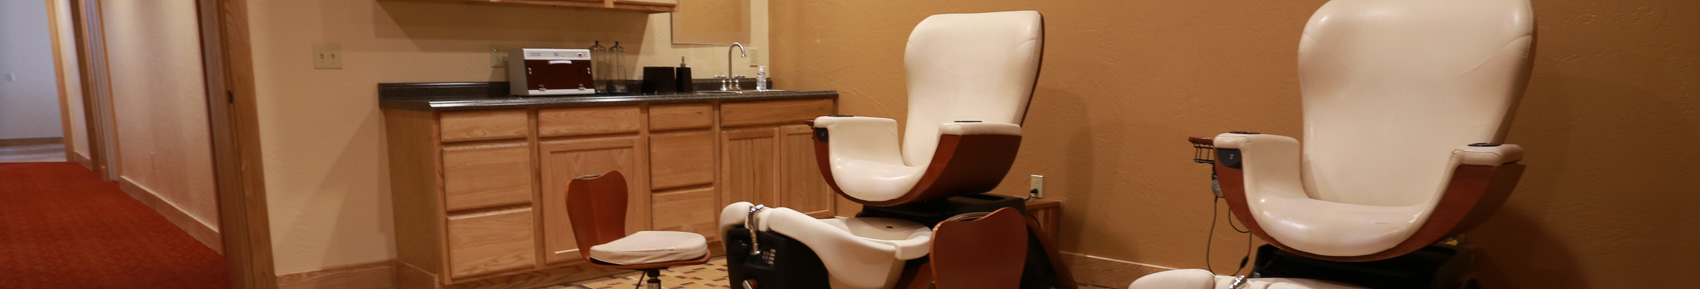 Trillium Spa Manicure and Pedicure Station